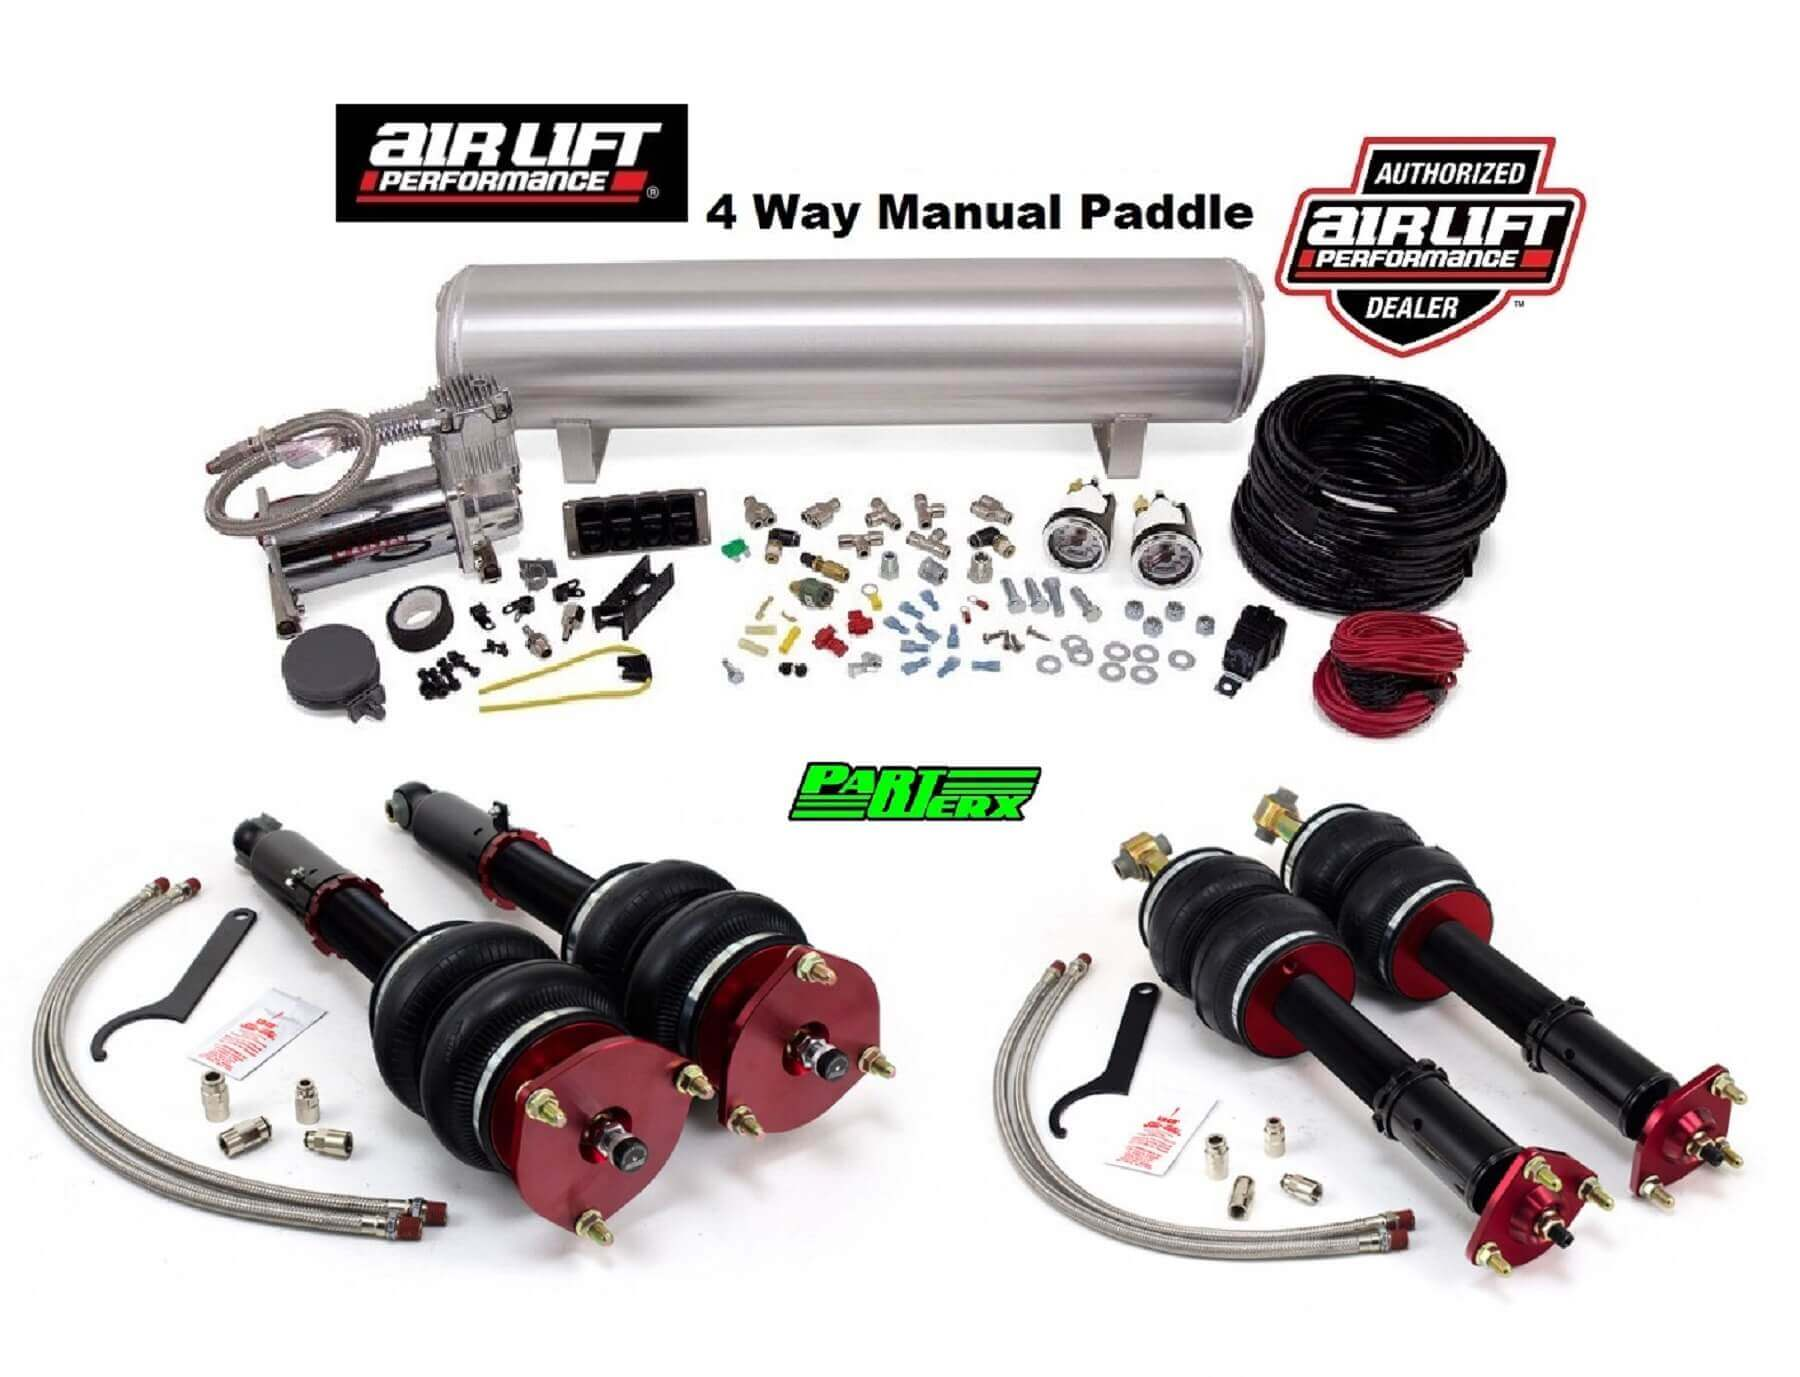 Lexus GS 300 400 430 air lift performance kit with 4 way manual management